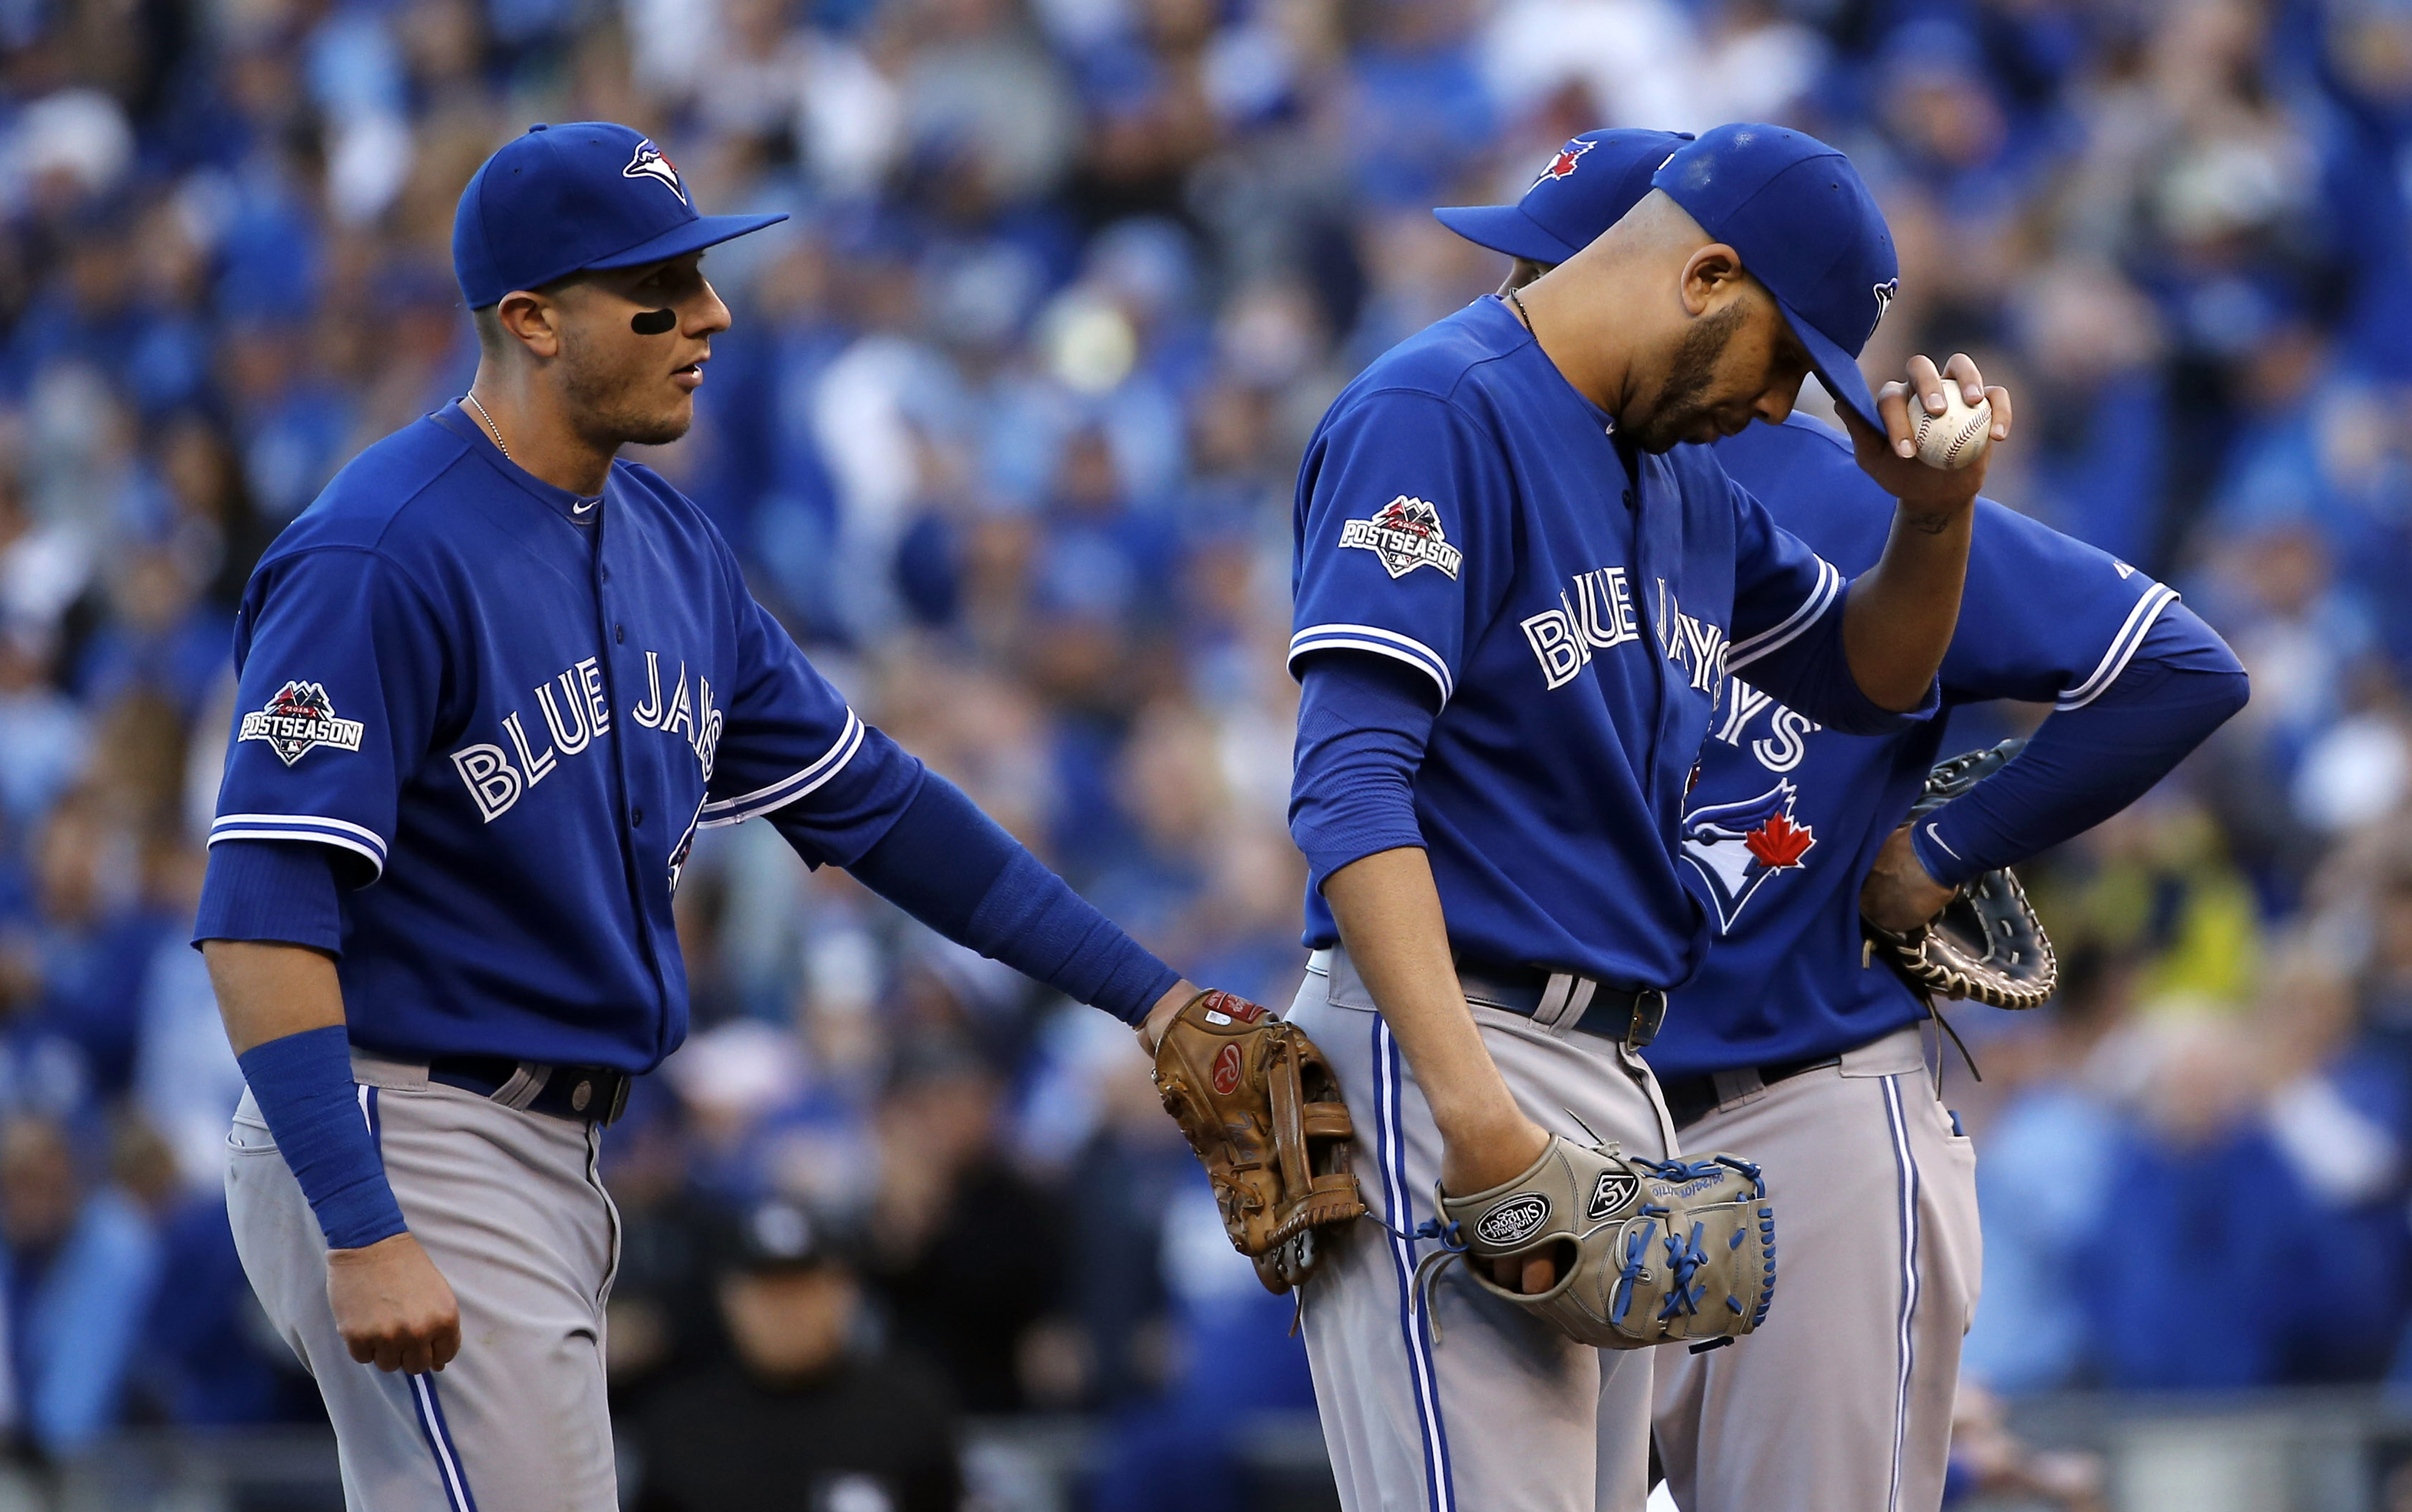 Toronto Blue Jays starting pitcher David Price, front right, reacts after being taken out during the seventh inning of Game 2 of baseball's American League Championship Series against the Kansas City Royals, Saturday, Oct. 17, 2015, in Kansas City, Mo. (A